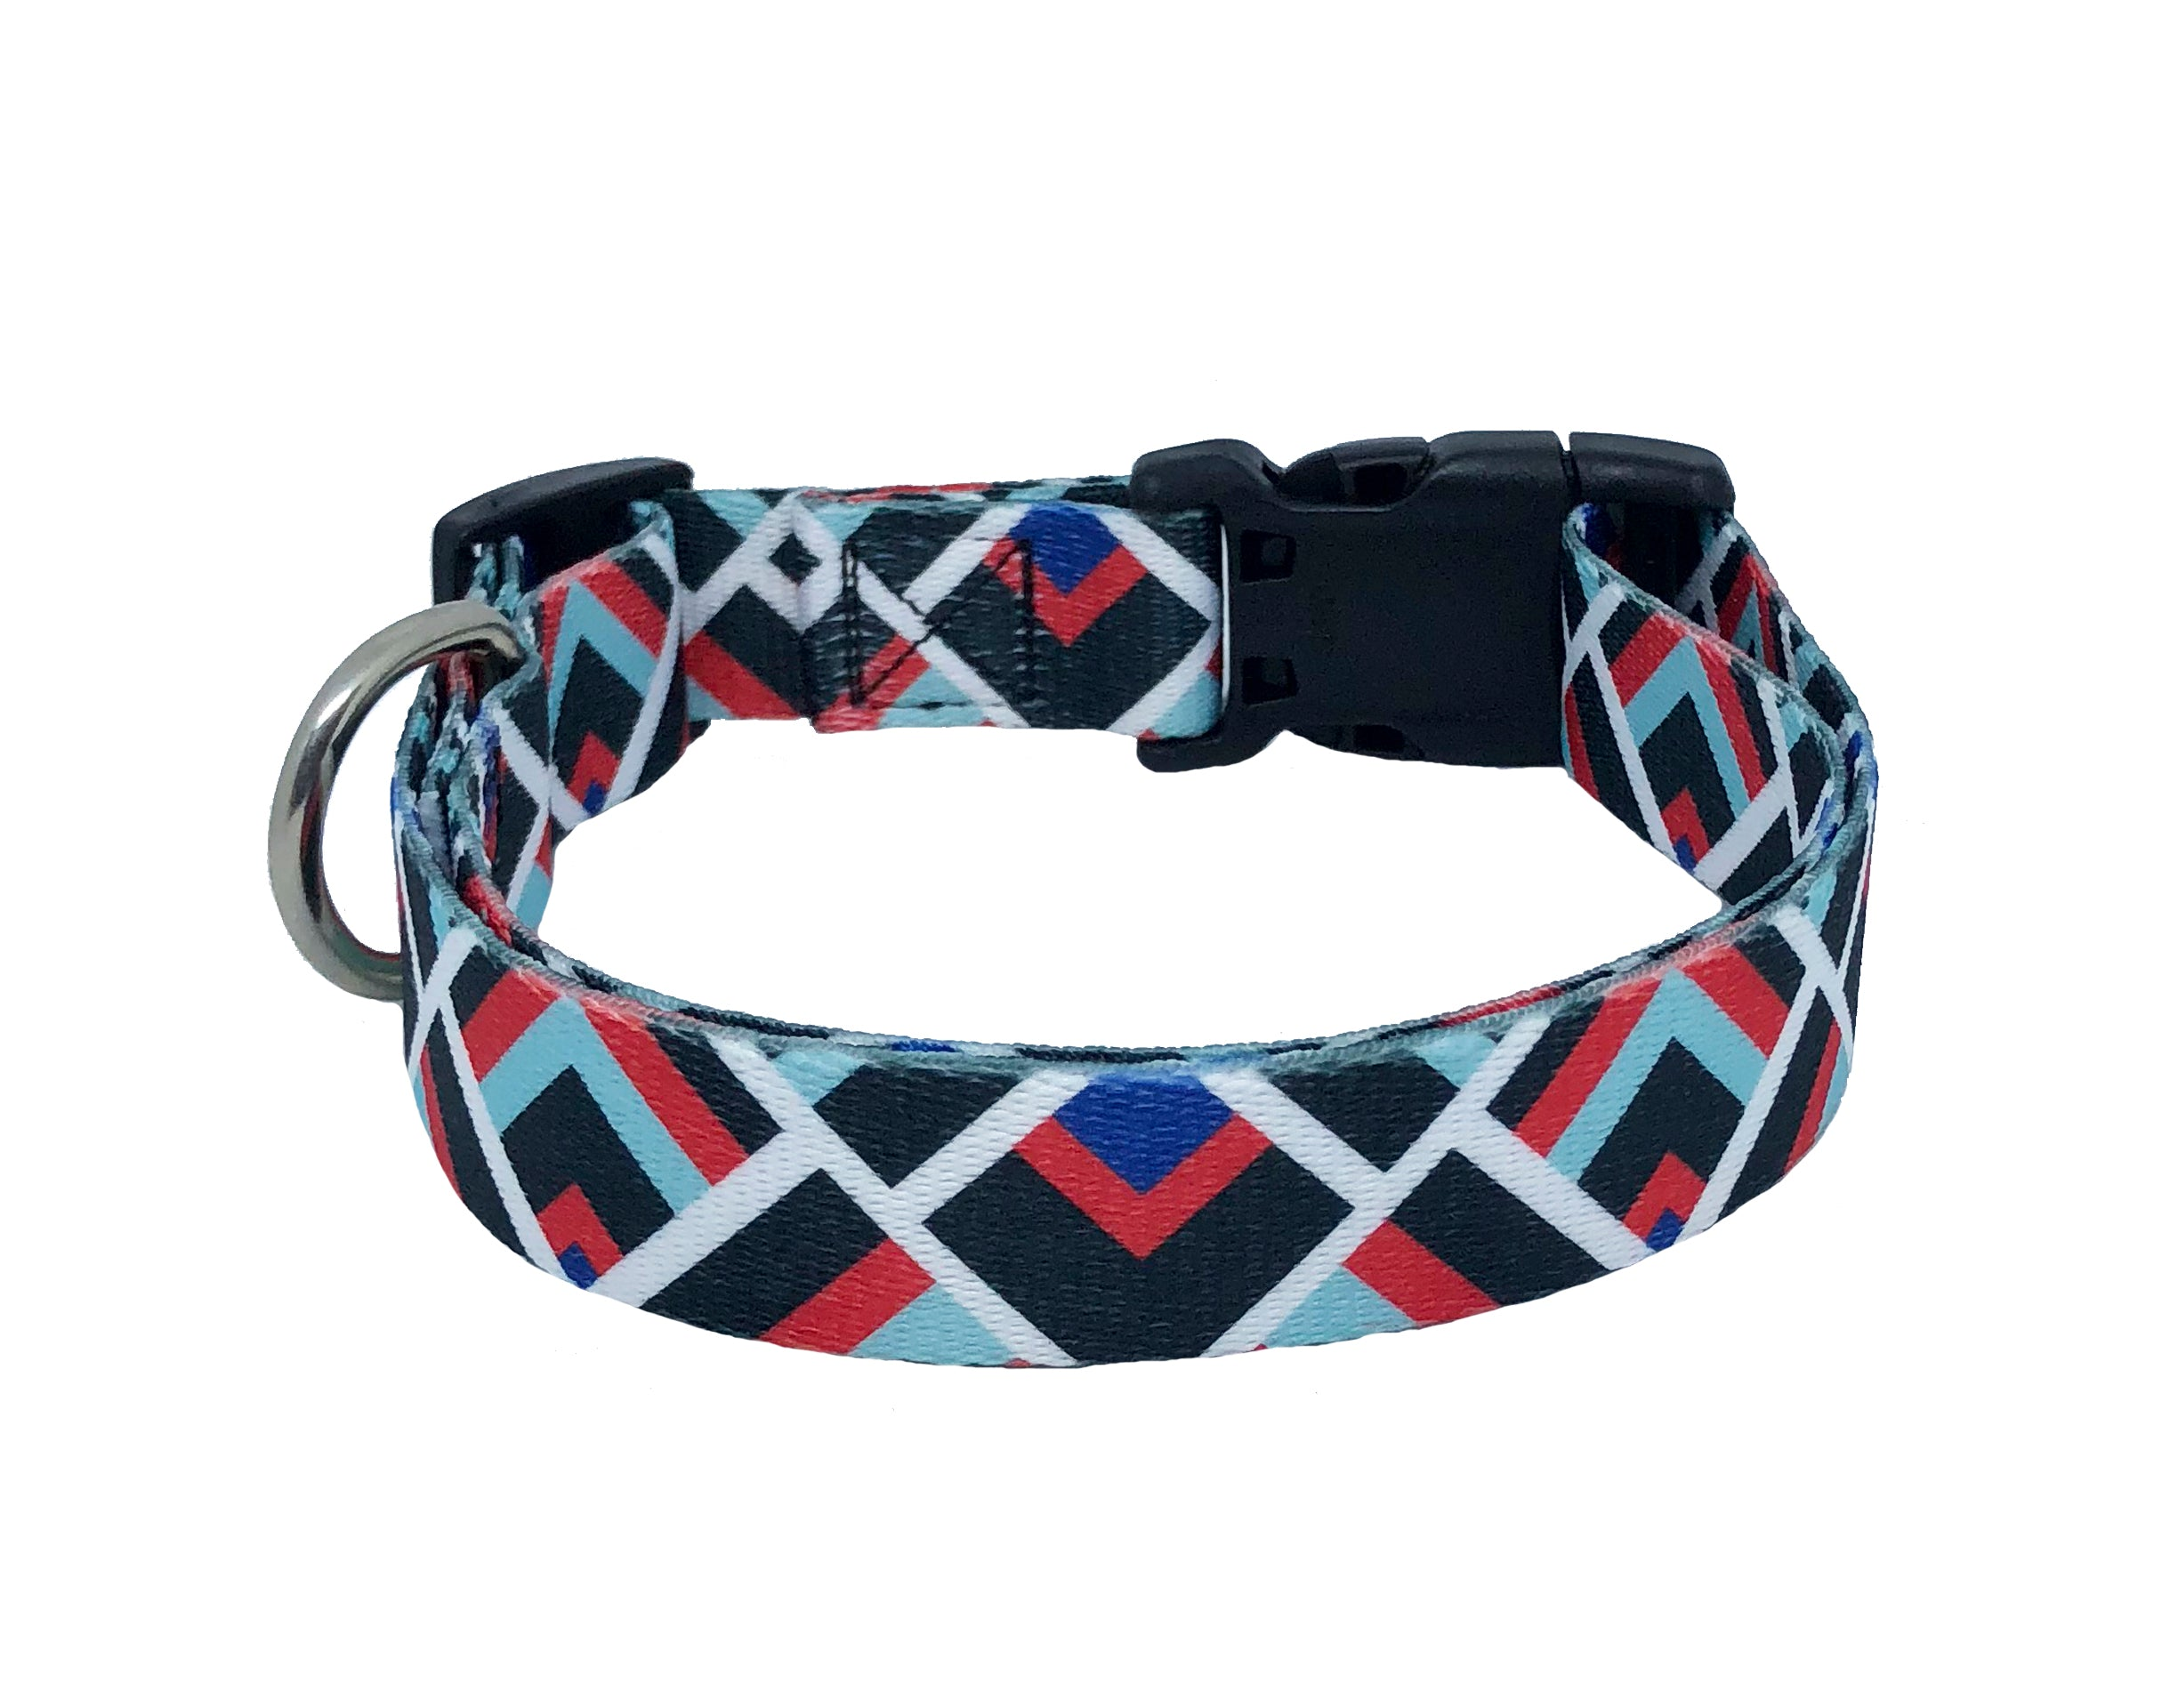 Furenzy Collar & Leash Set